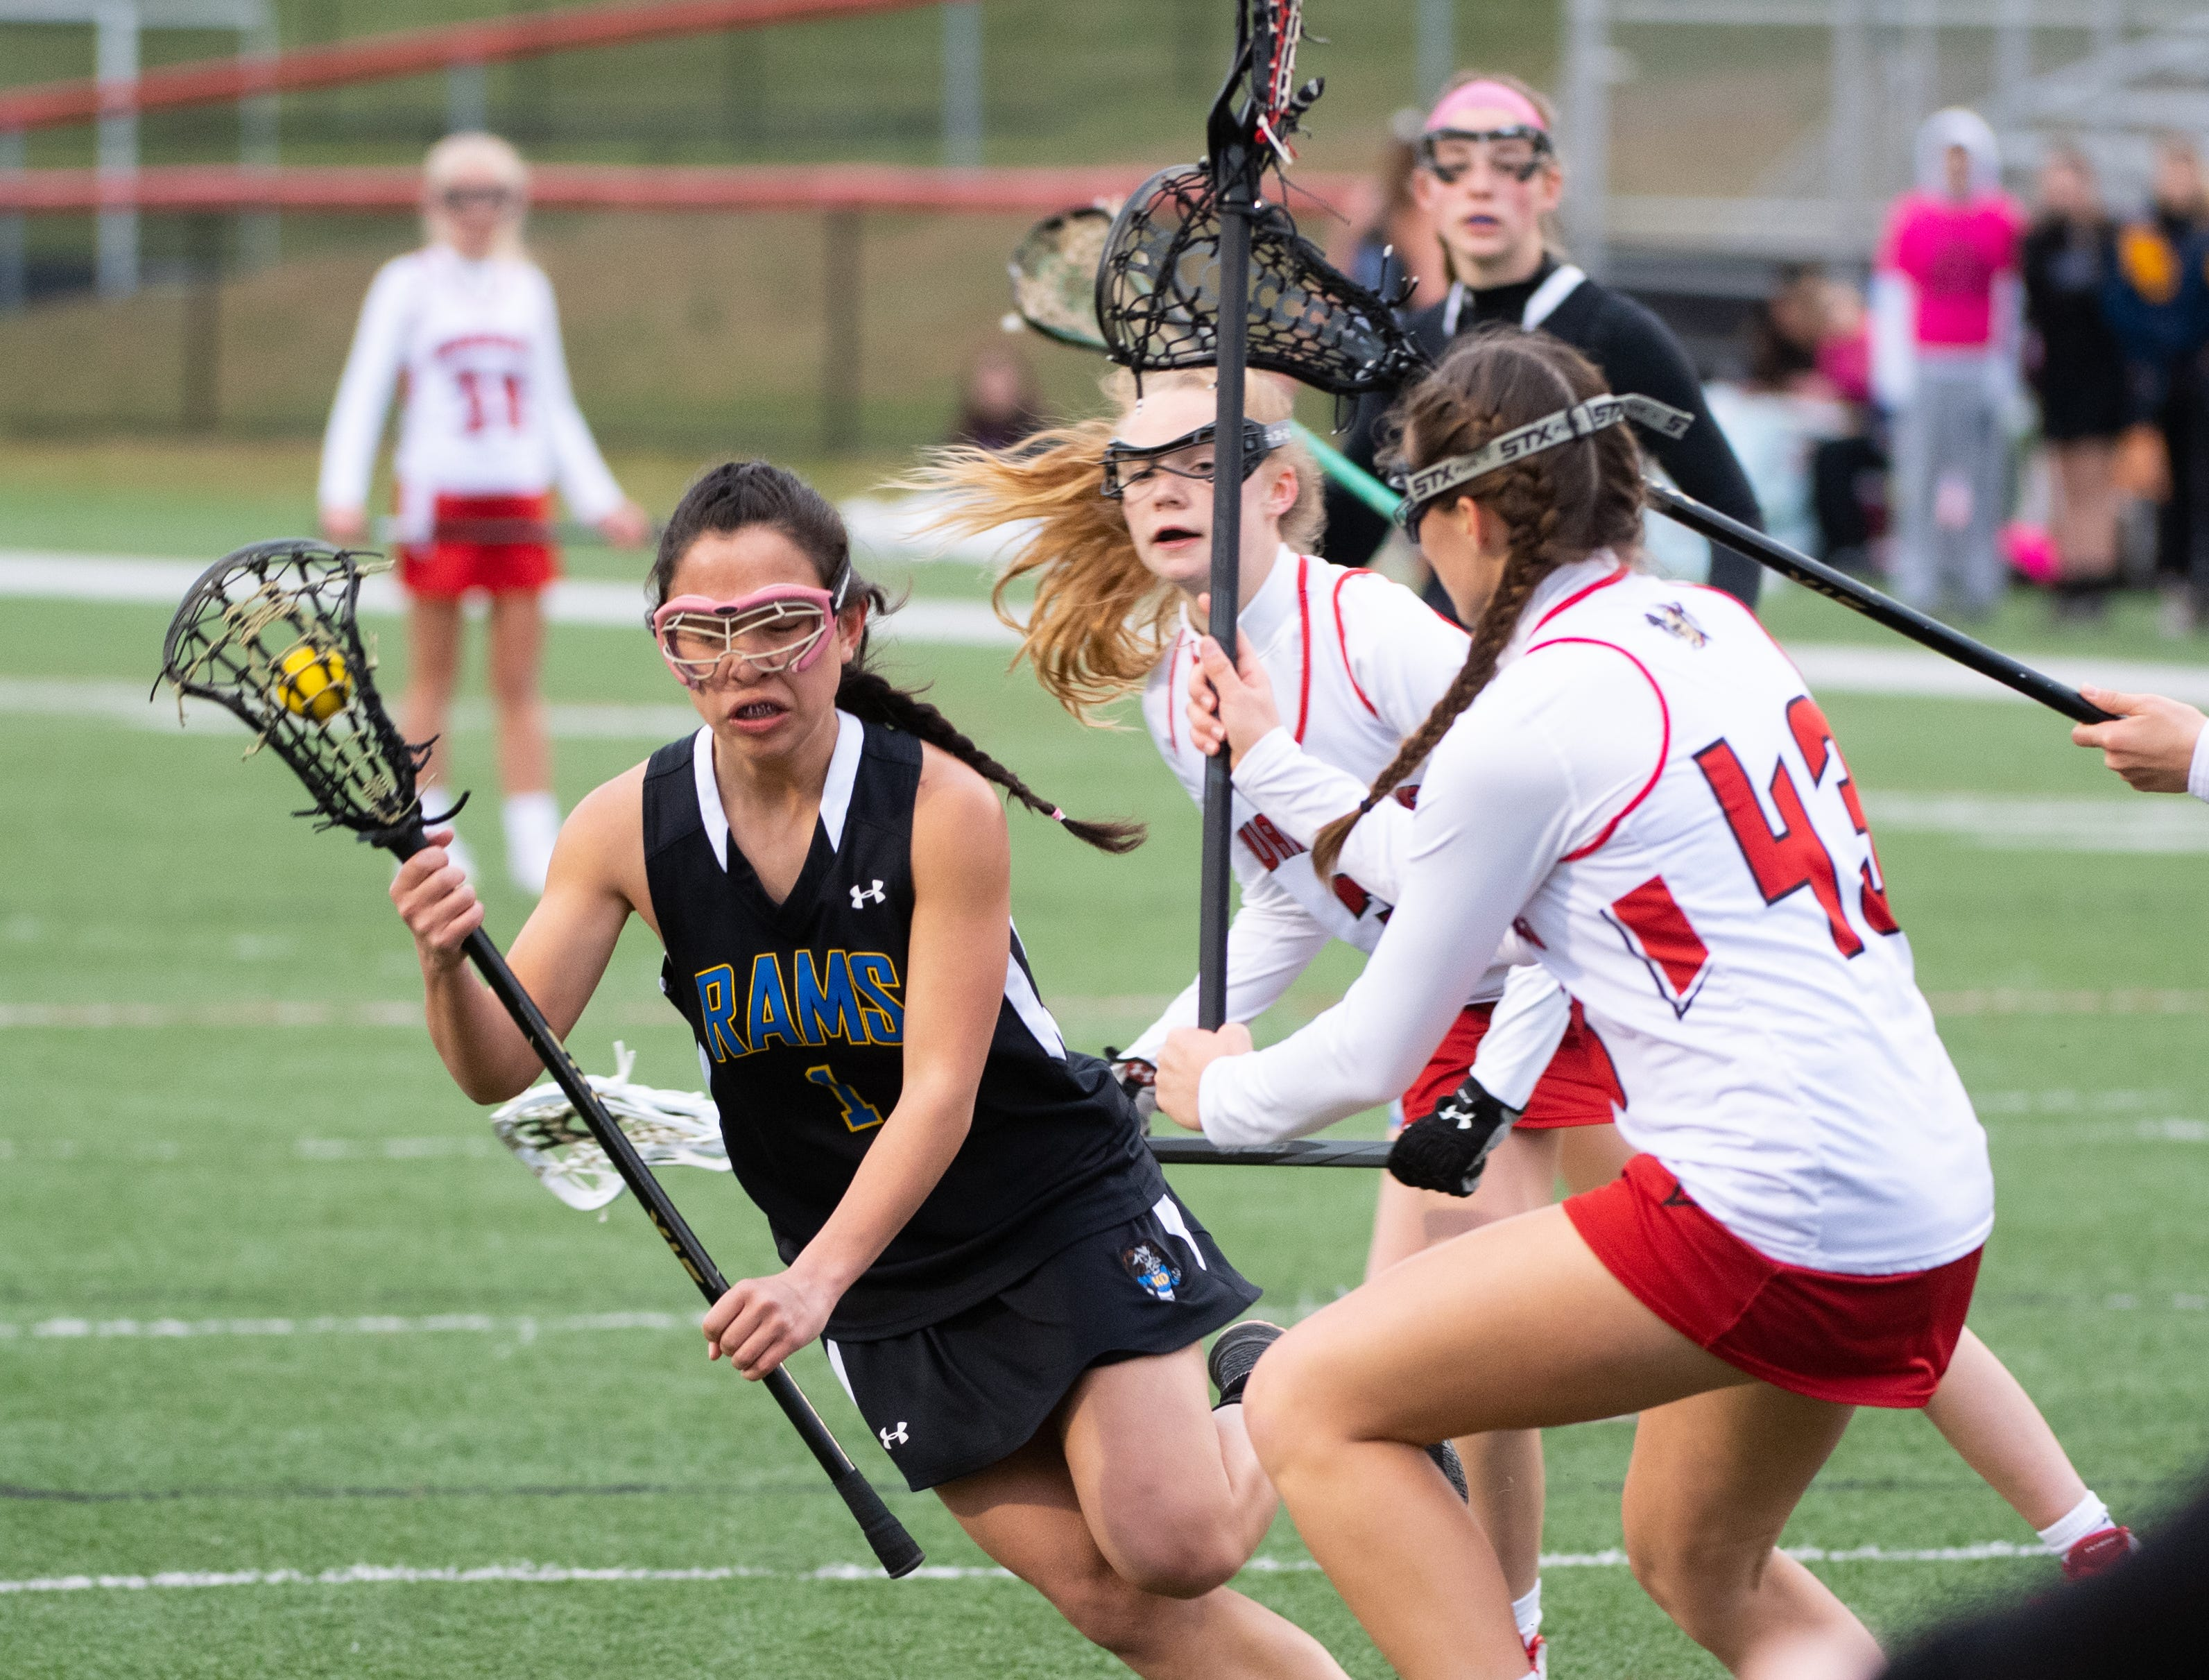 Jenna Soukaseum (1) evades the defense during the girls' lacrosse game between Susquehannock and Kennard-Dale, April 2, 2019 at Susquehannock High School. The Rams defeated the Warriors 17 to 2.